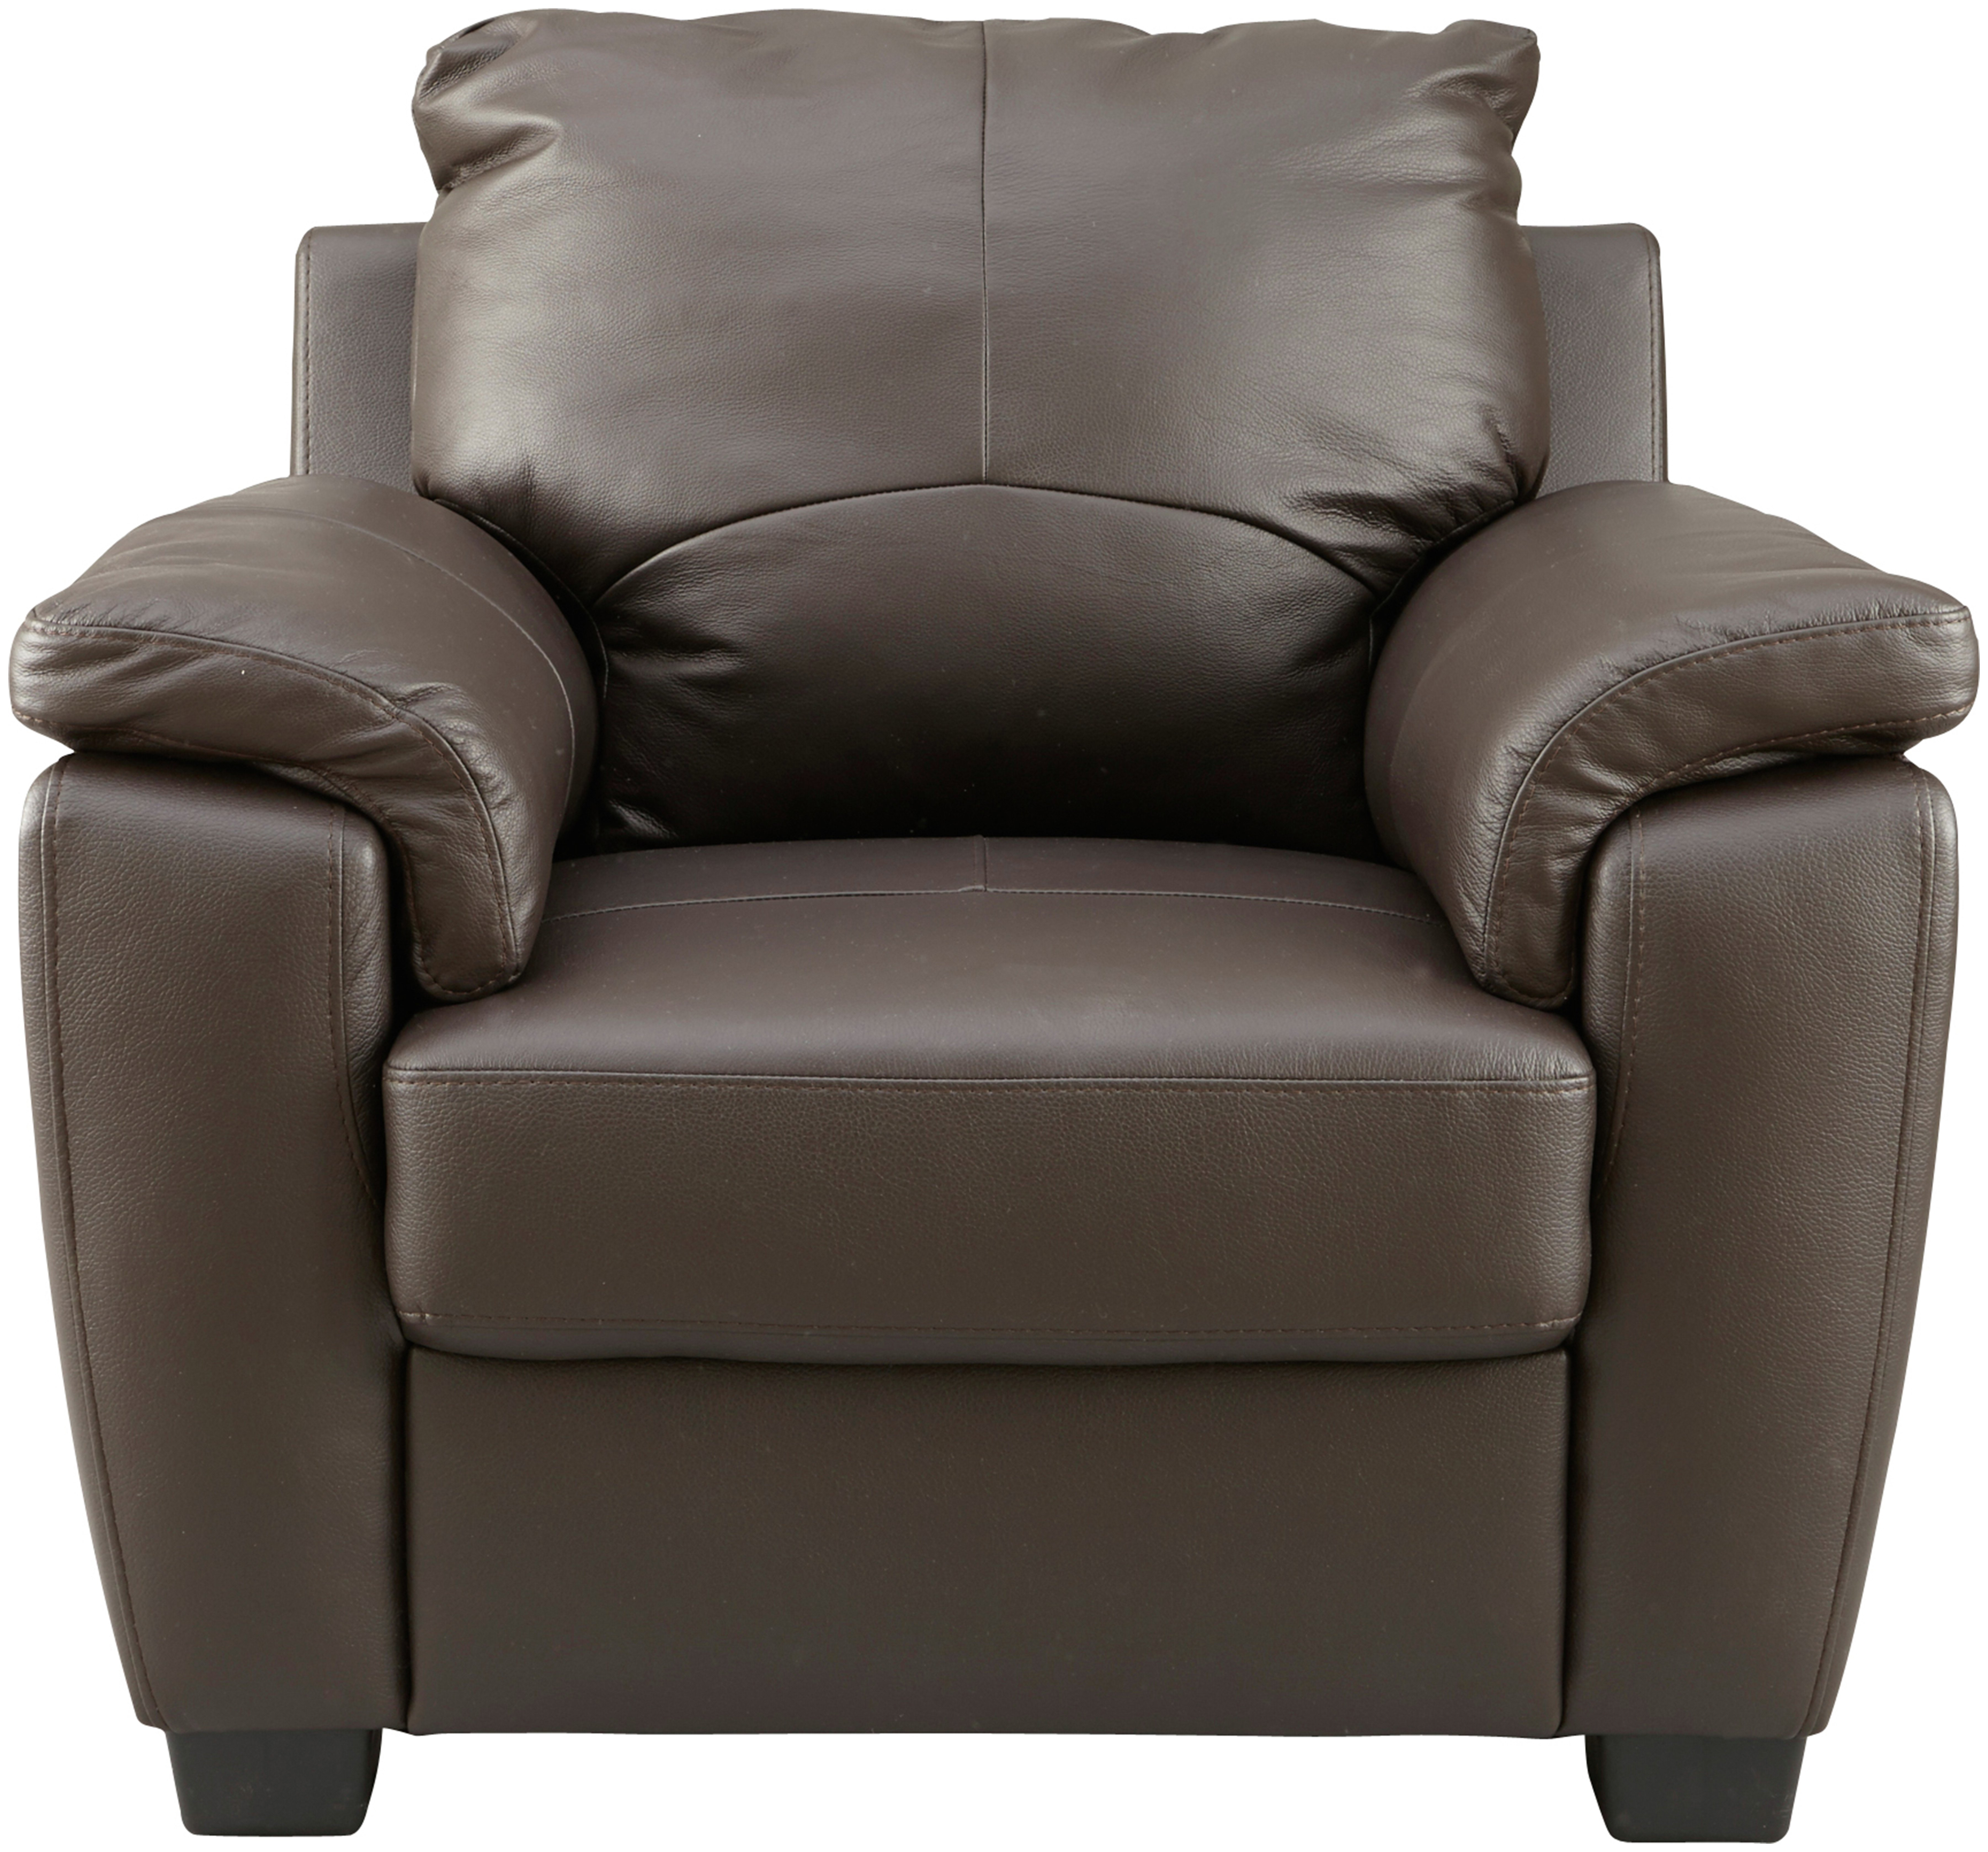 Sale On Argos Home Antonio Leather And Leather